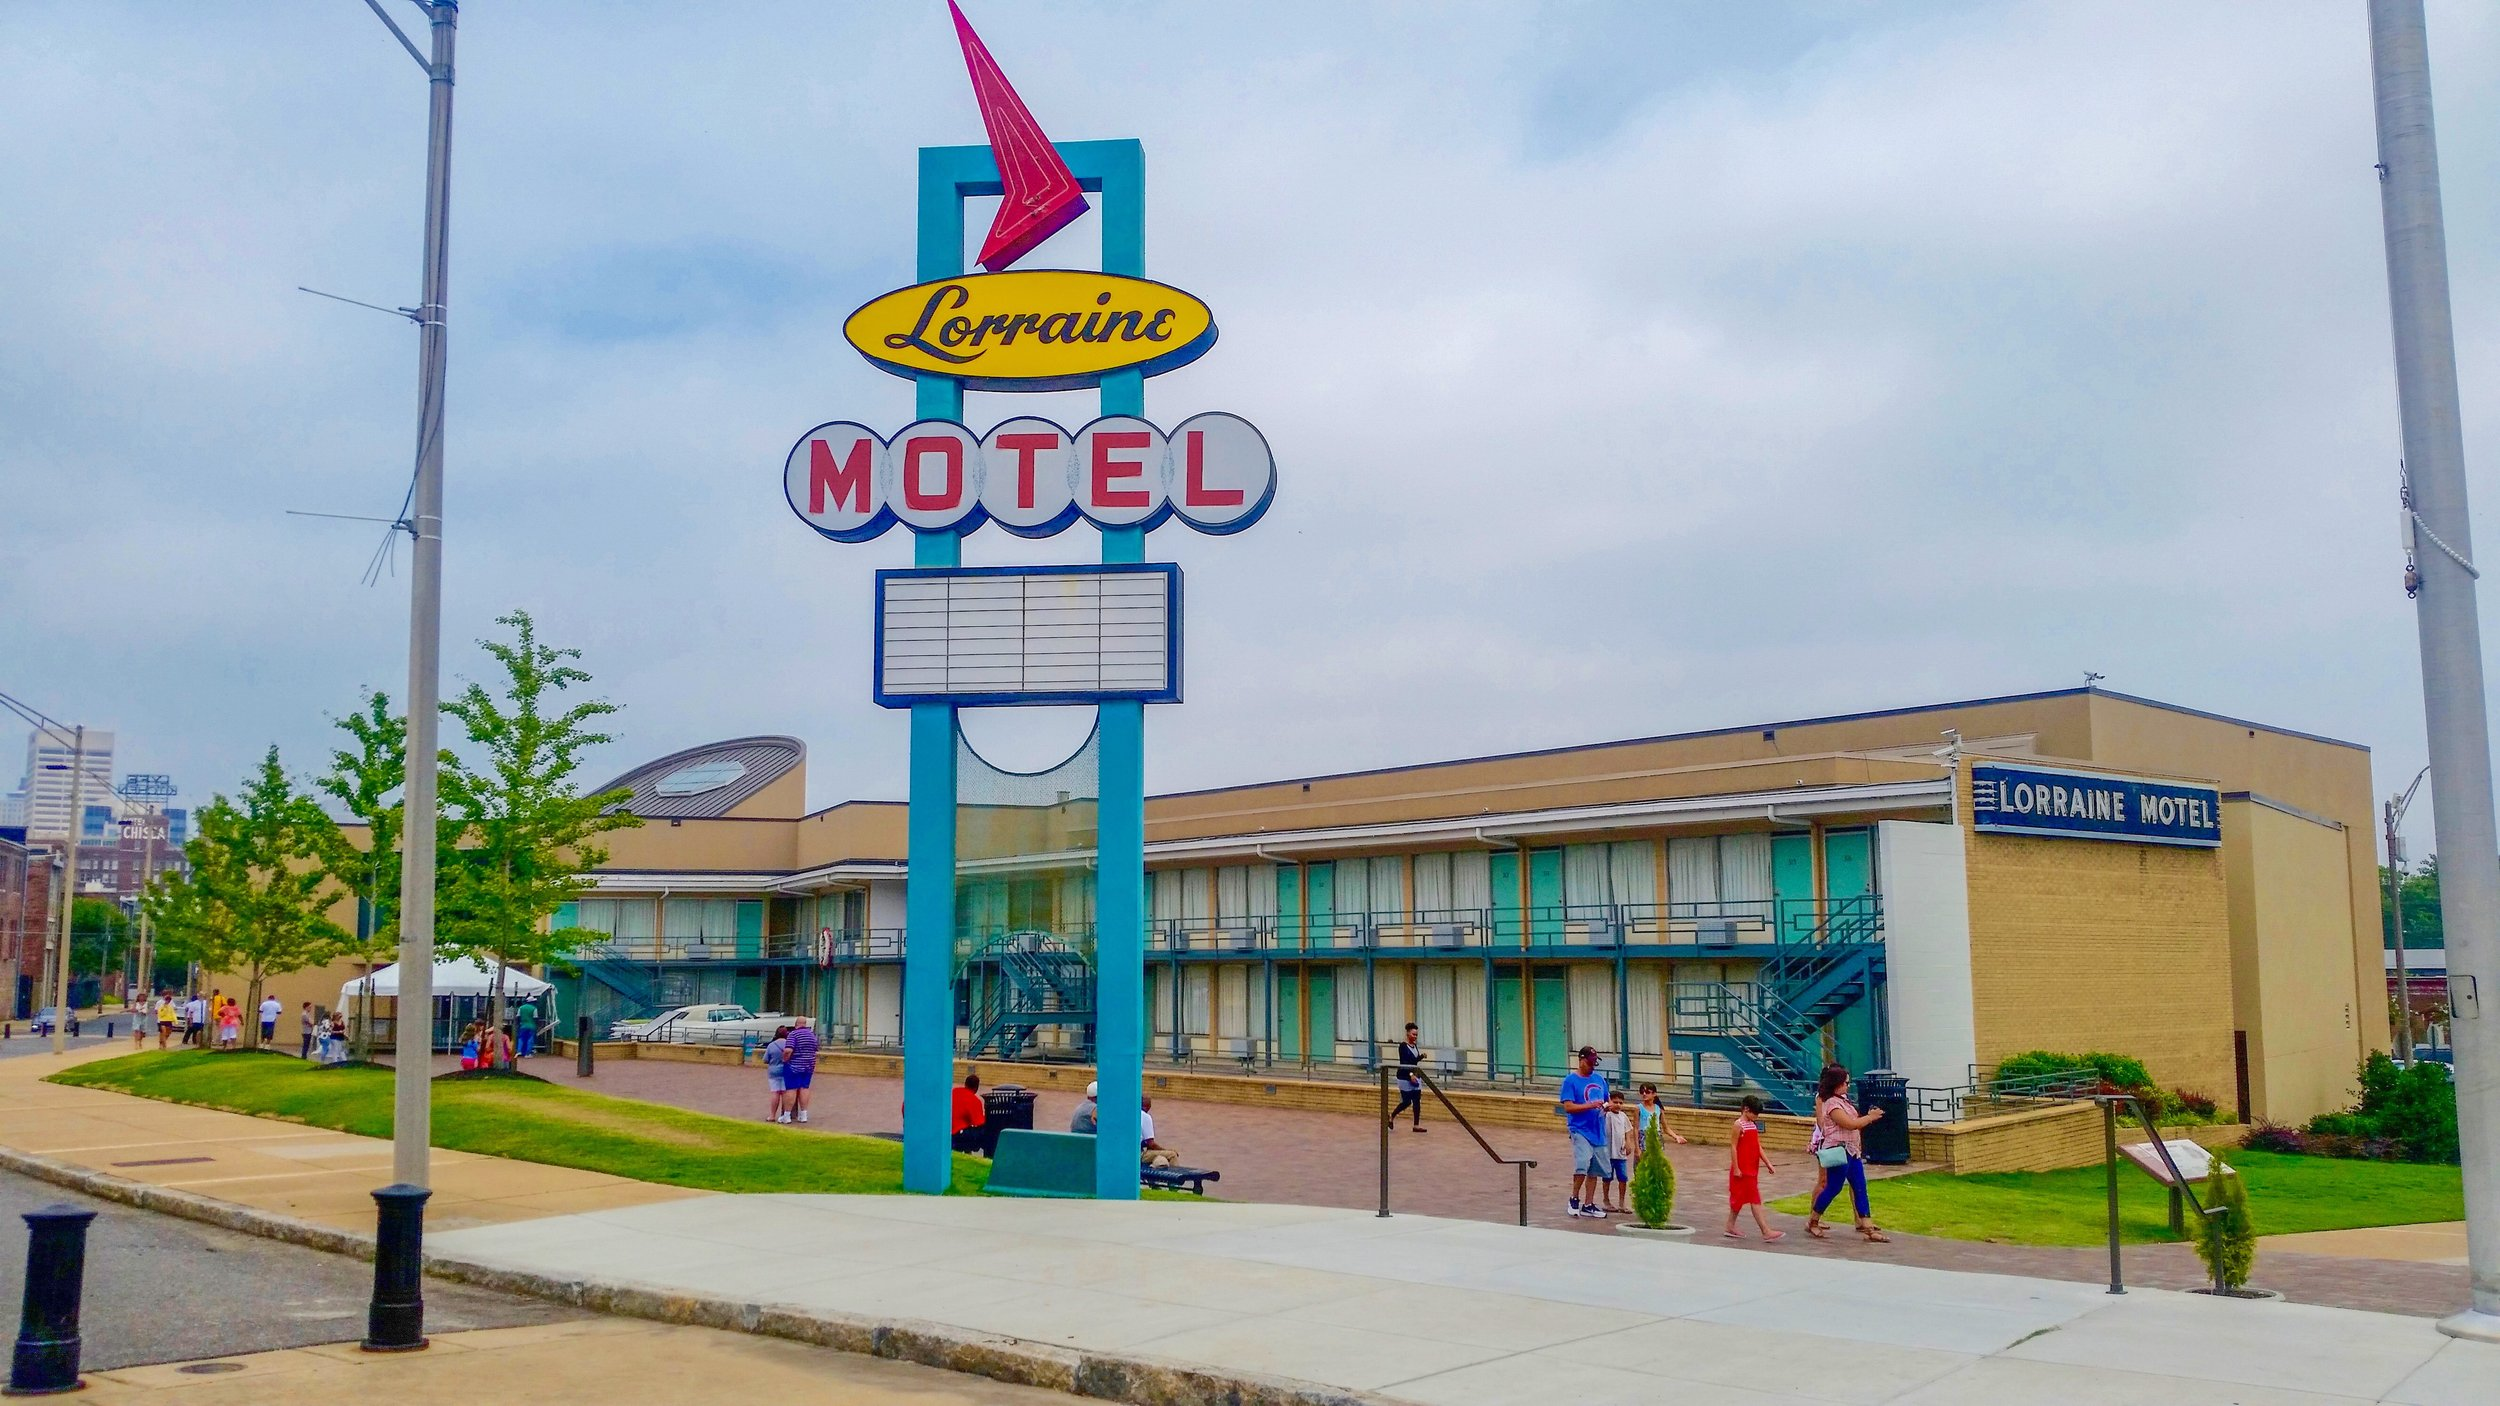 The National Civil Rights Museum is housed within the Lorraine Motel, the city of Martin Luther King Jr's death